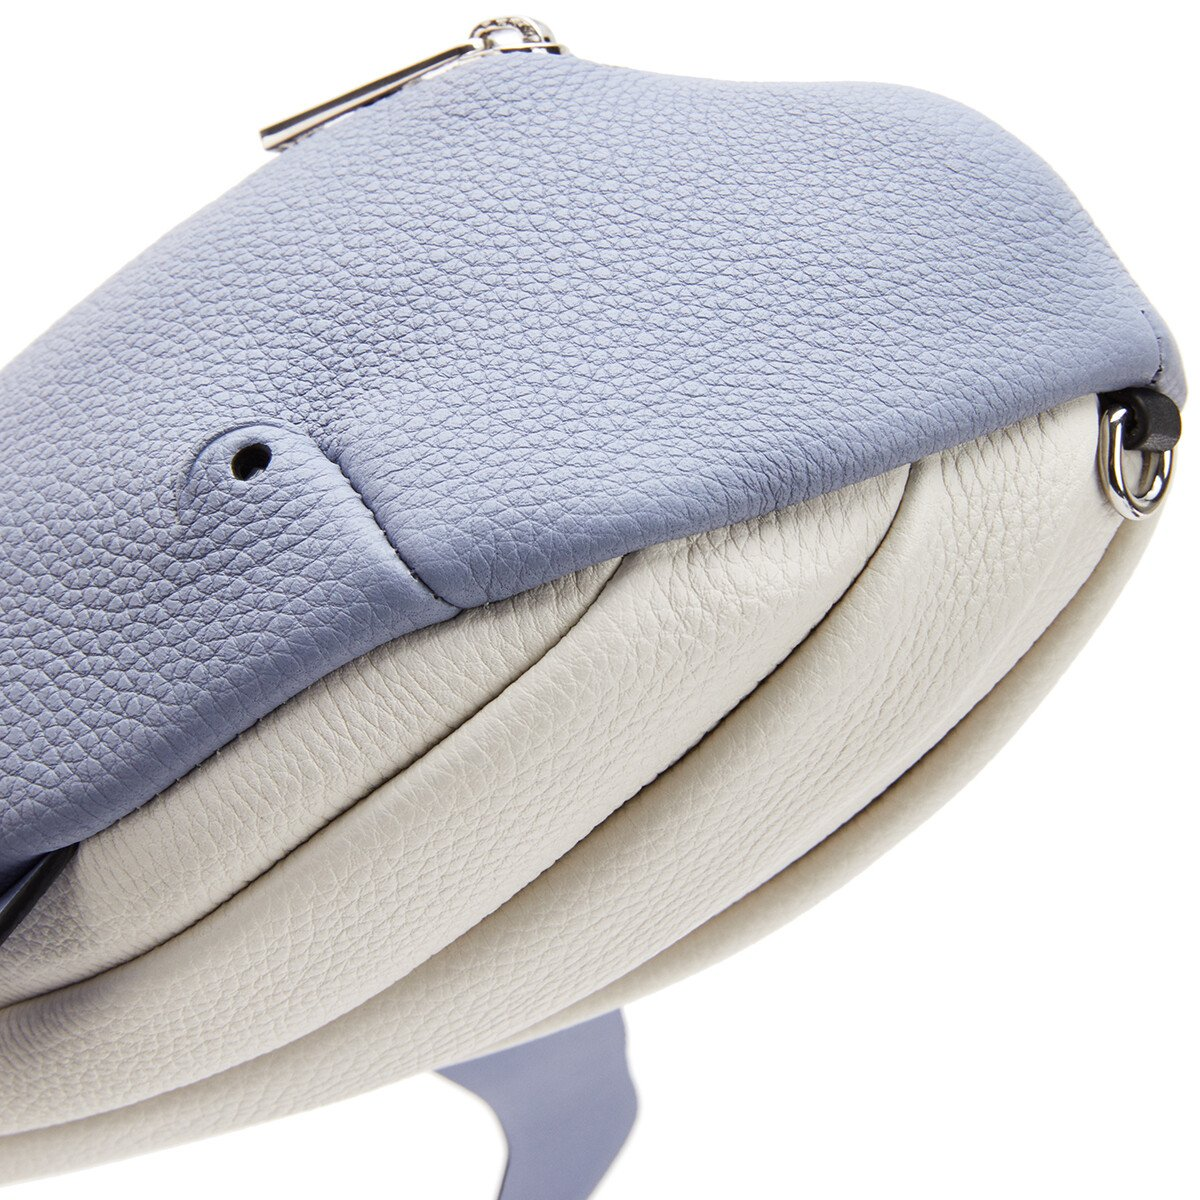 LOEWE Whale Crossbody Bag In Soft Grained Calfskin Blueberry/Soft White front